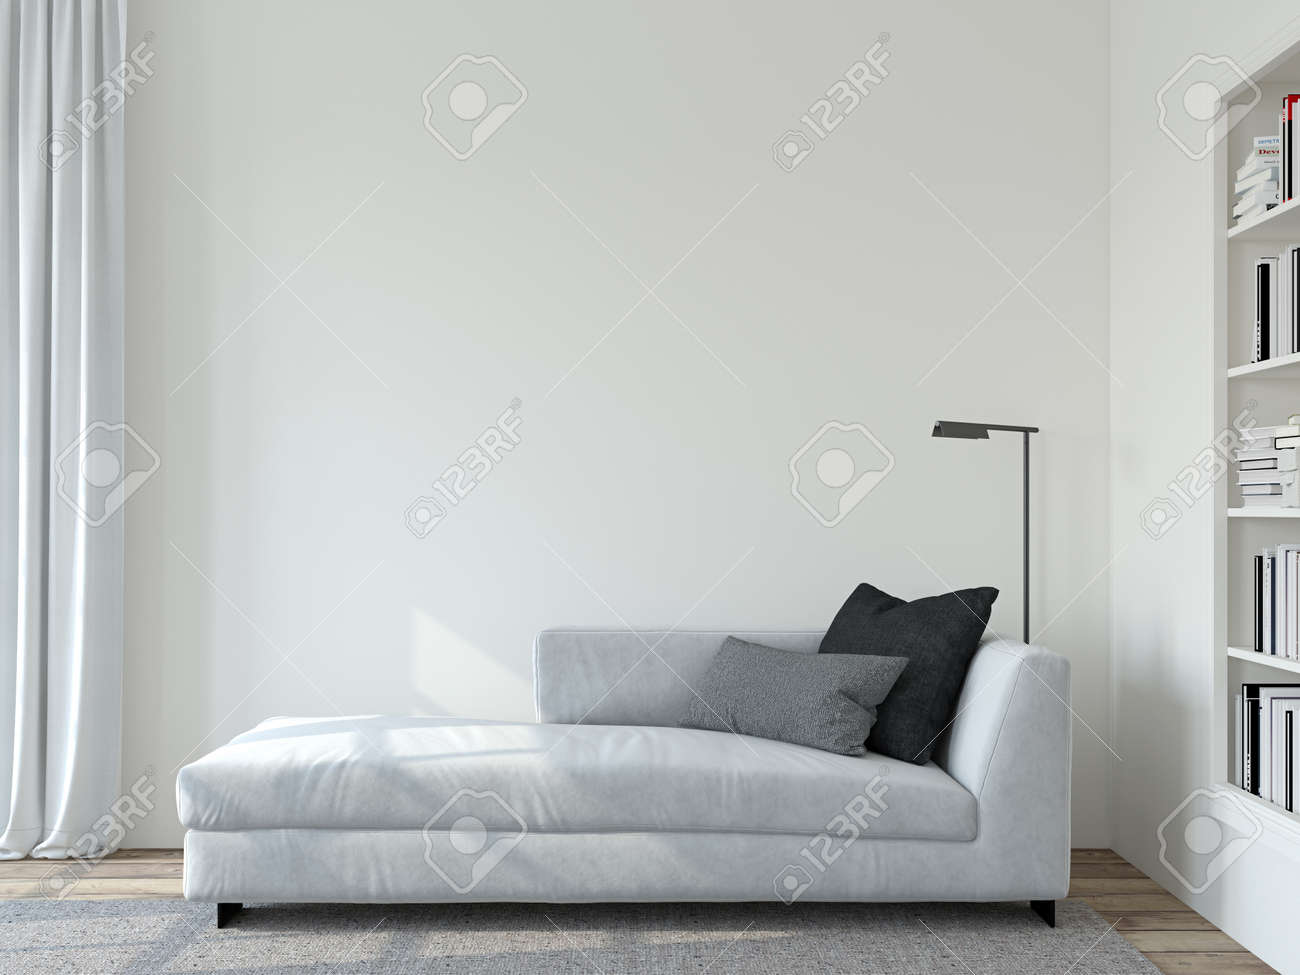 Modern living room interior. Interior mockup. The white couch near empty white wall. 3d render. - 163984313